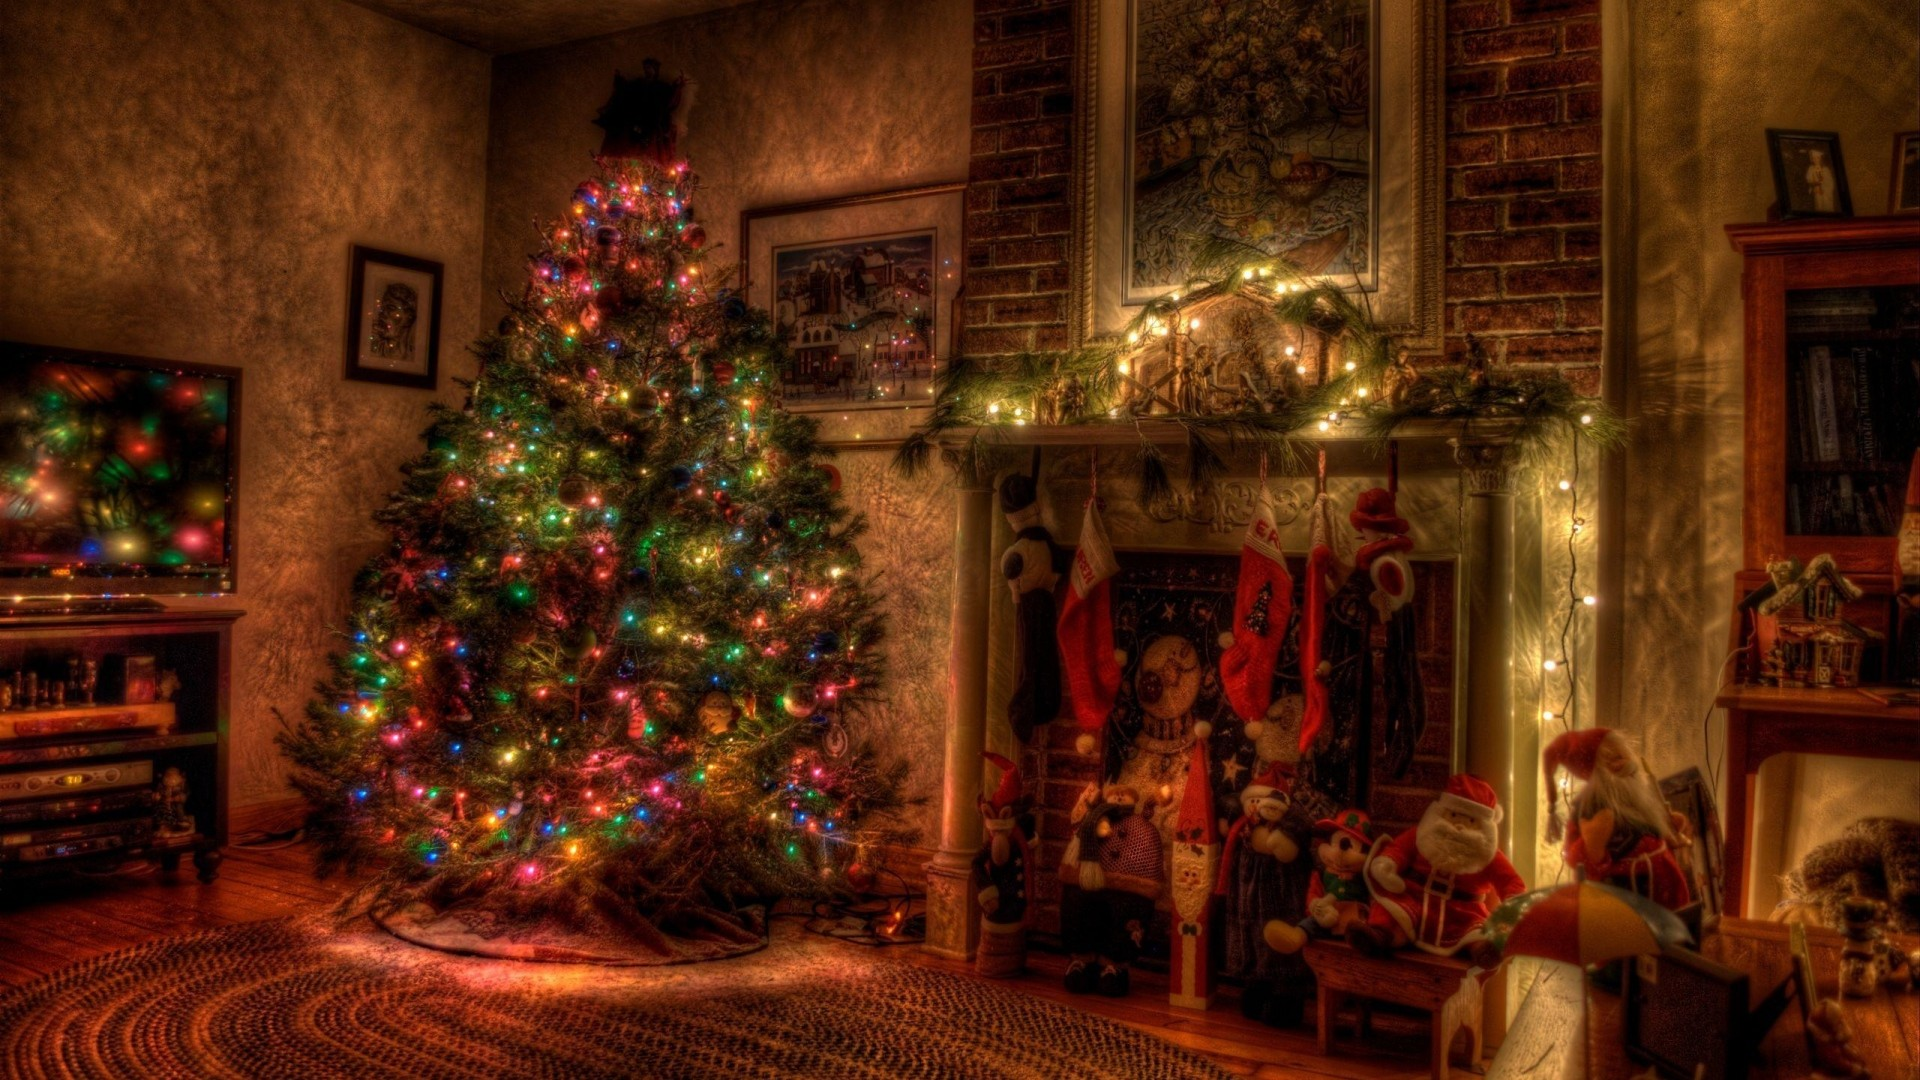 1920x1080 Preview wallpaper tree, christmas, holiday, garland, fireplace, toys,  stockings